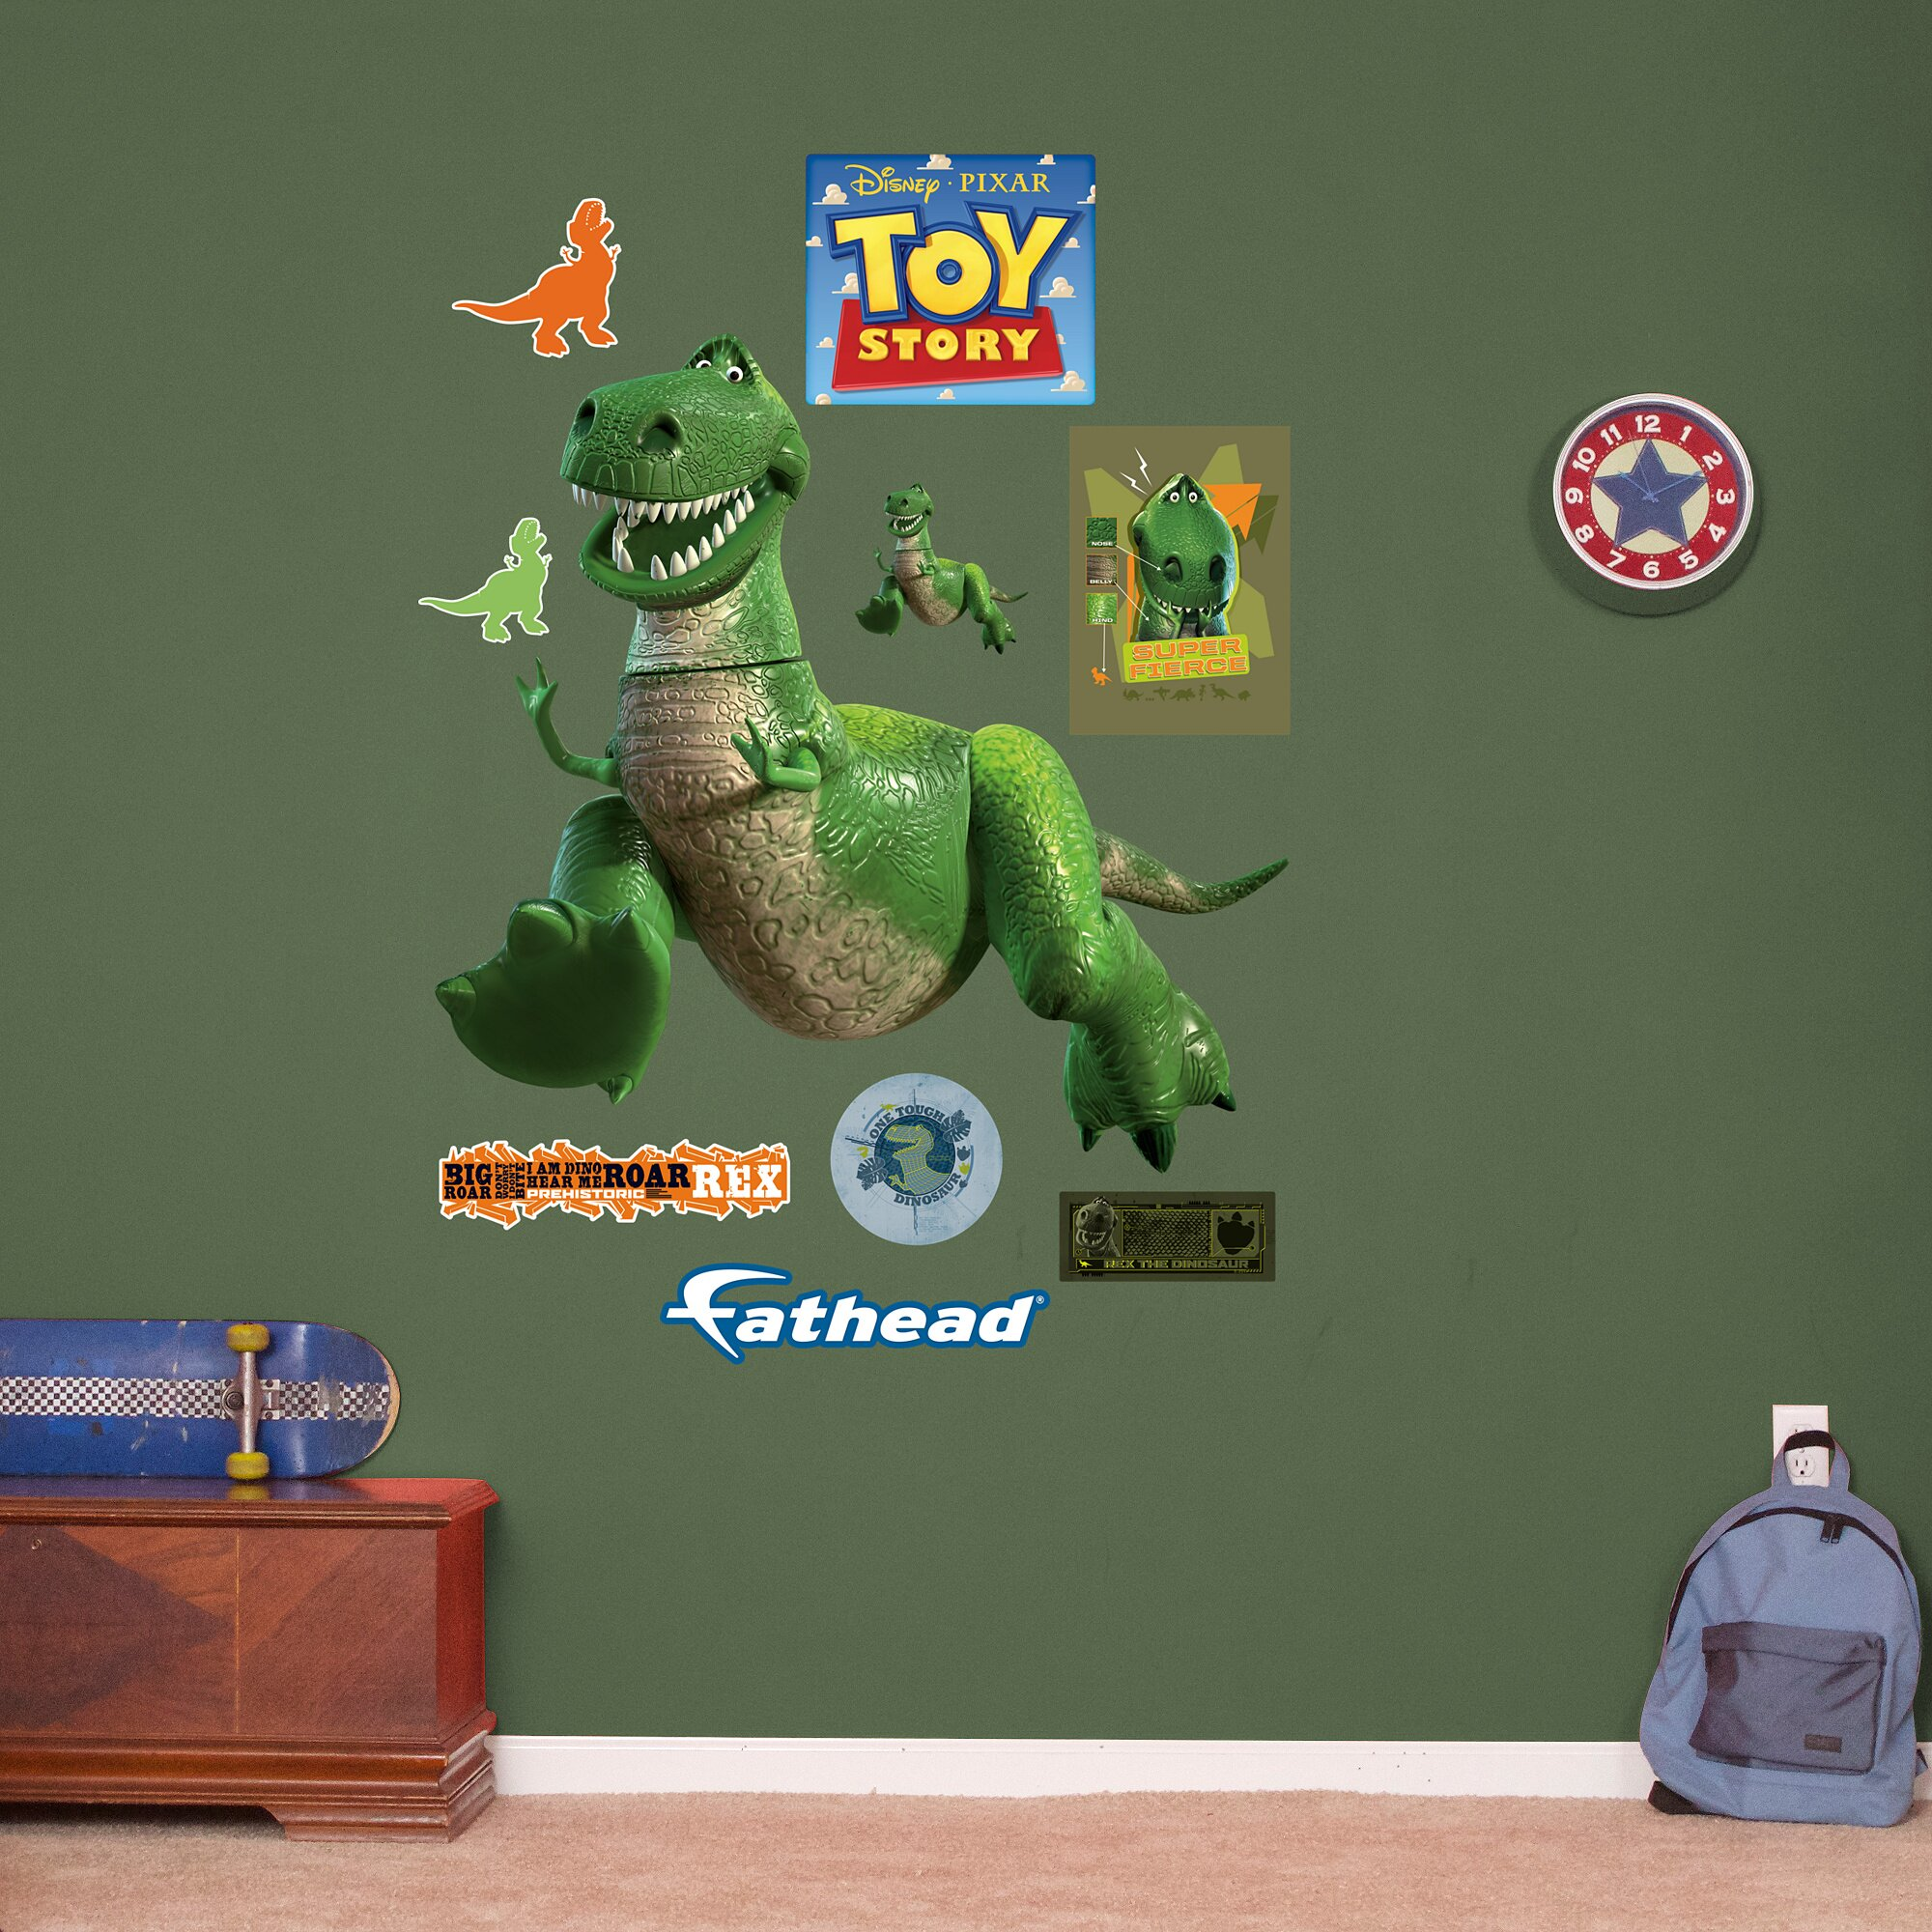 Fathead Kids Toy Story Decal